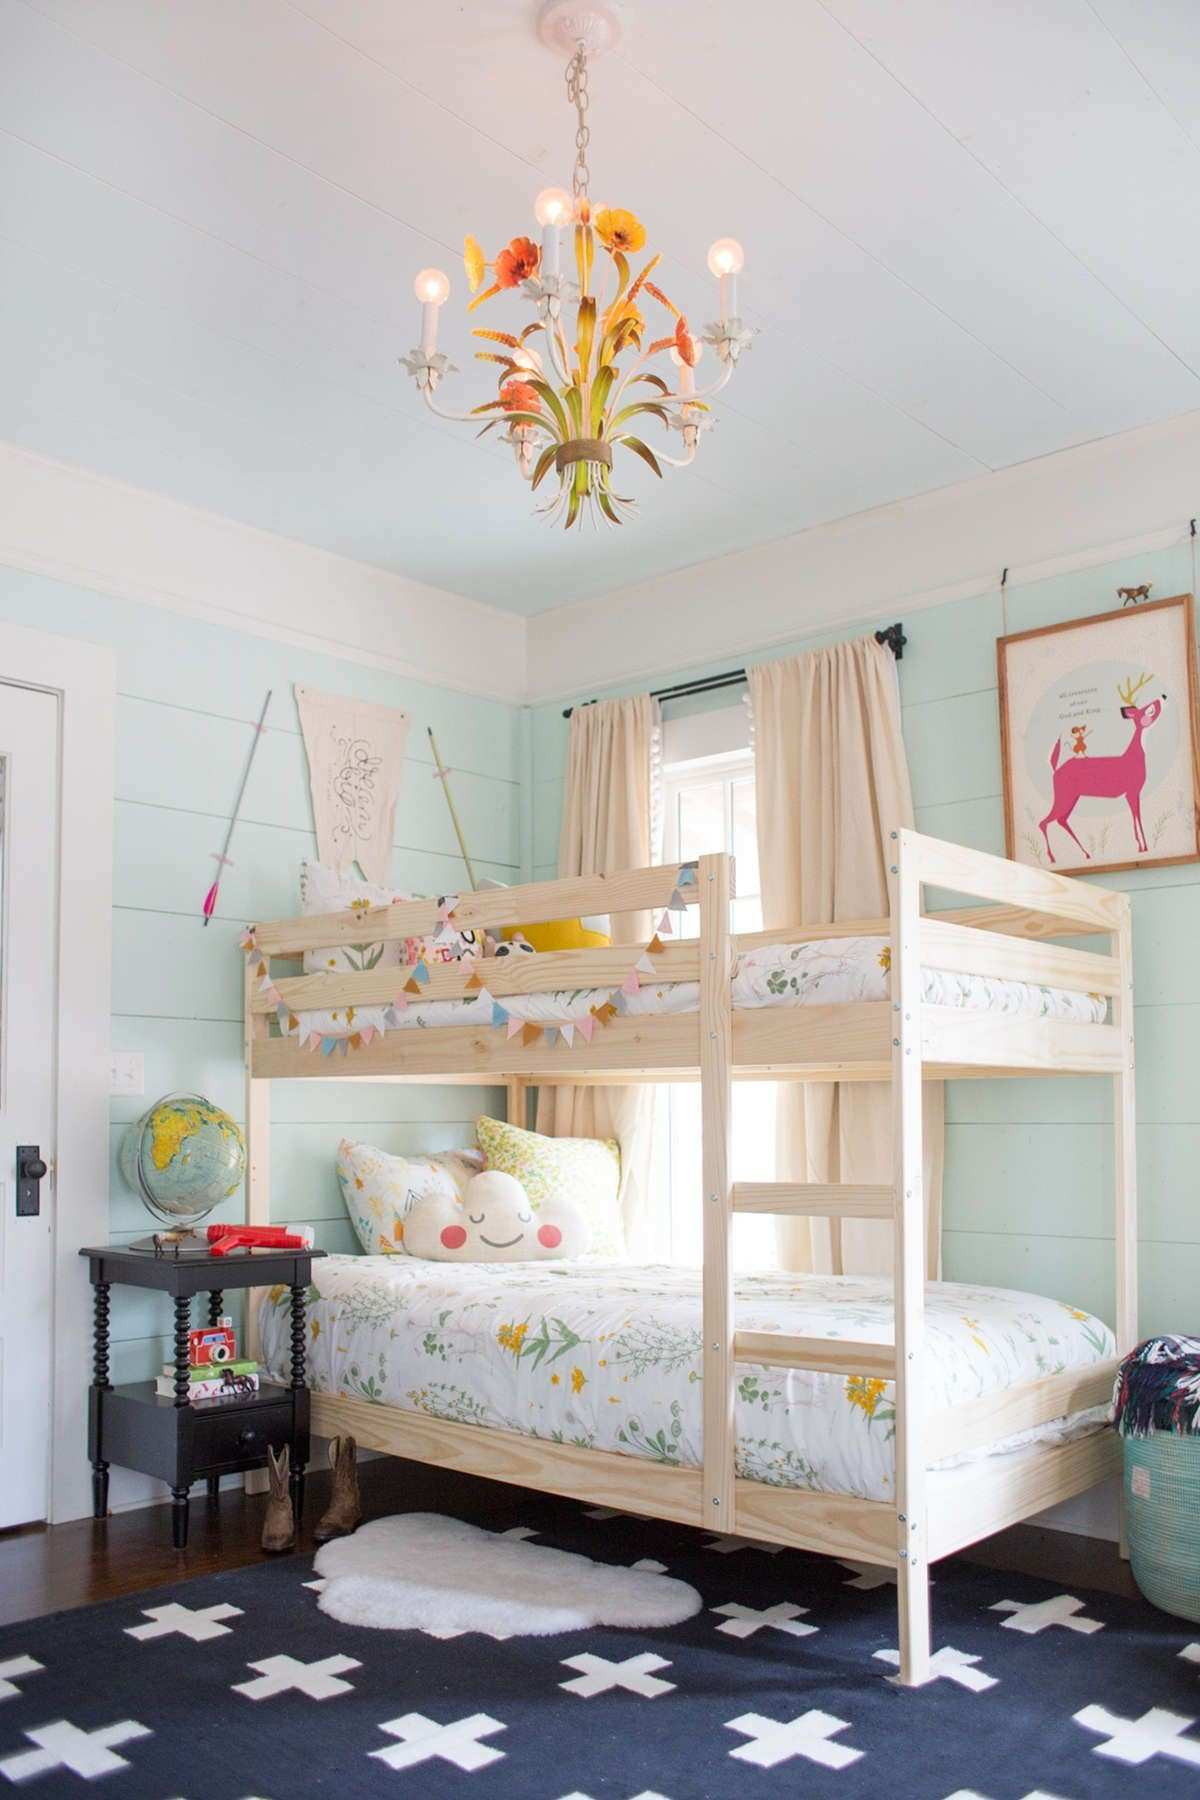 shared room for two kids a baby Pinterest